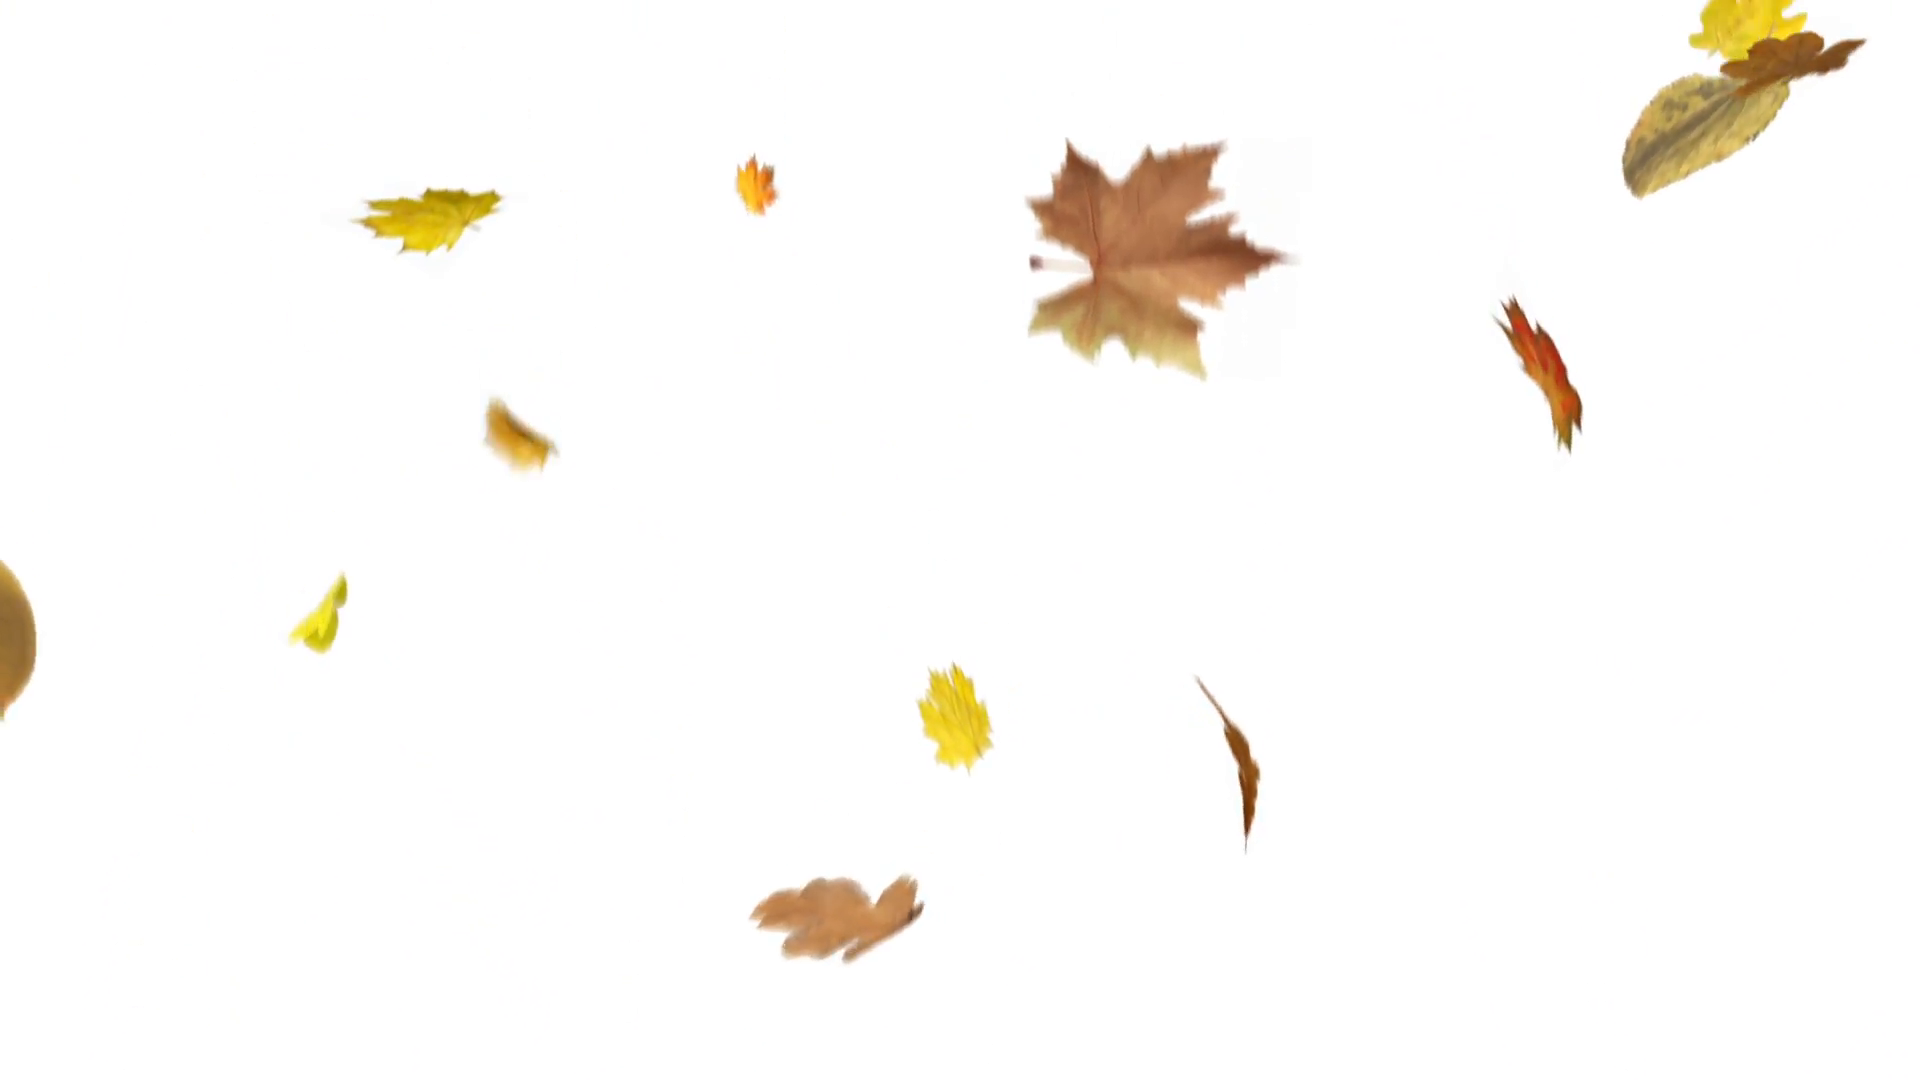 Large Isolated Leaves Falling Loop Motion Background - Videoblocks